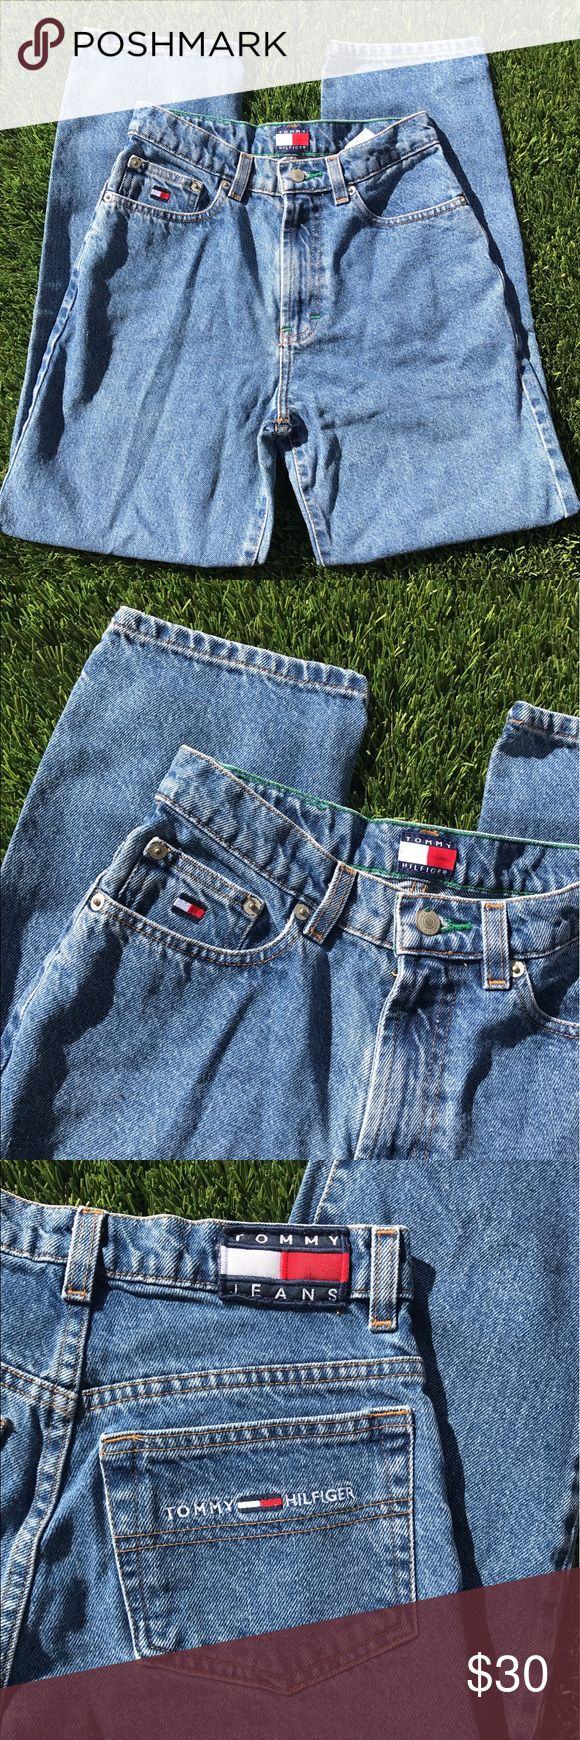 Vintage Tommy Hilfiger jeans size 10 kids Vintage great condition can also be cut into shorts Tommy Hilfiger Bottoms Jeans